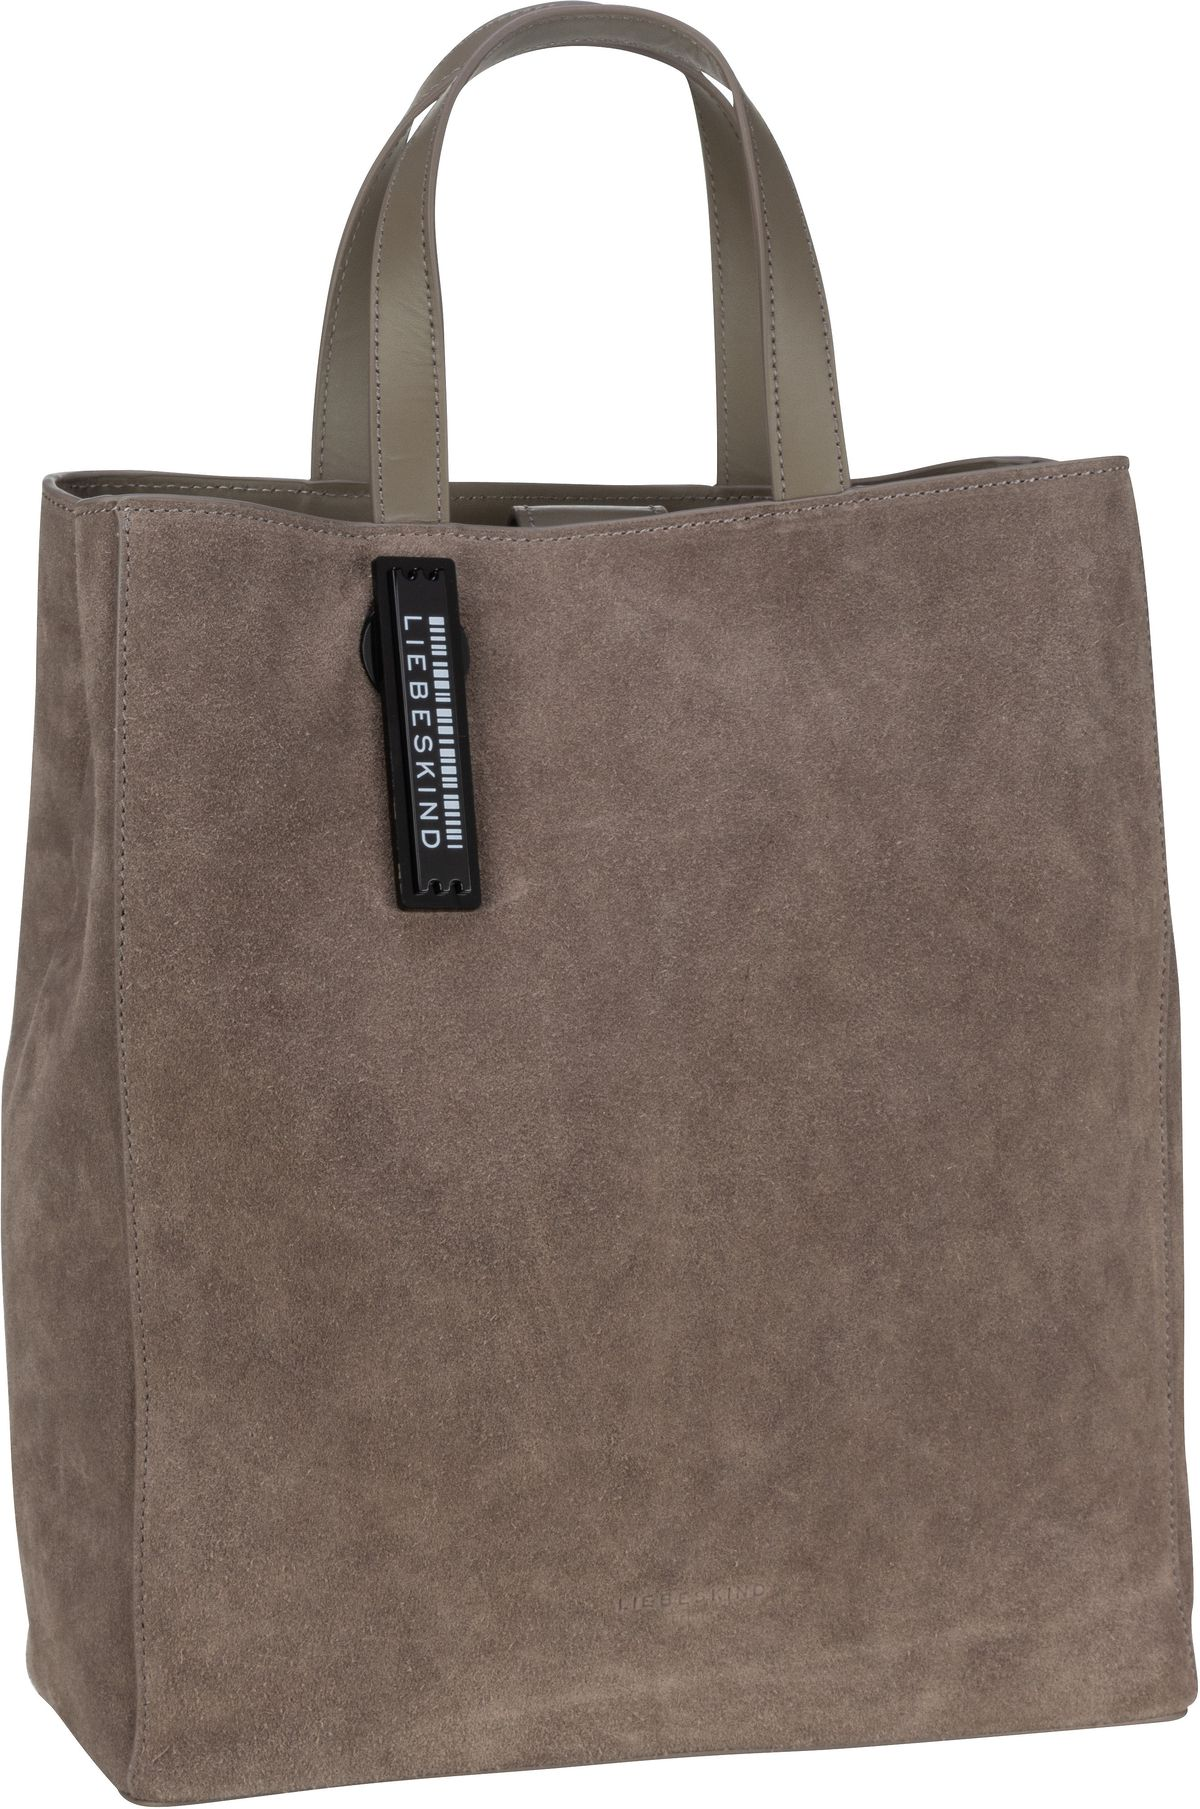 Berlin Shopper Paper Bag M Suede Light Cement